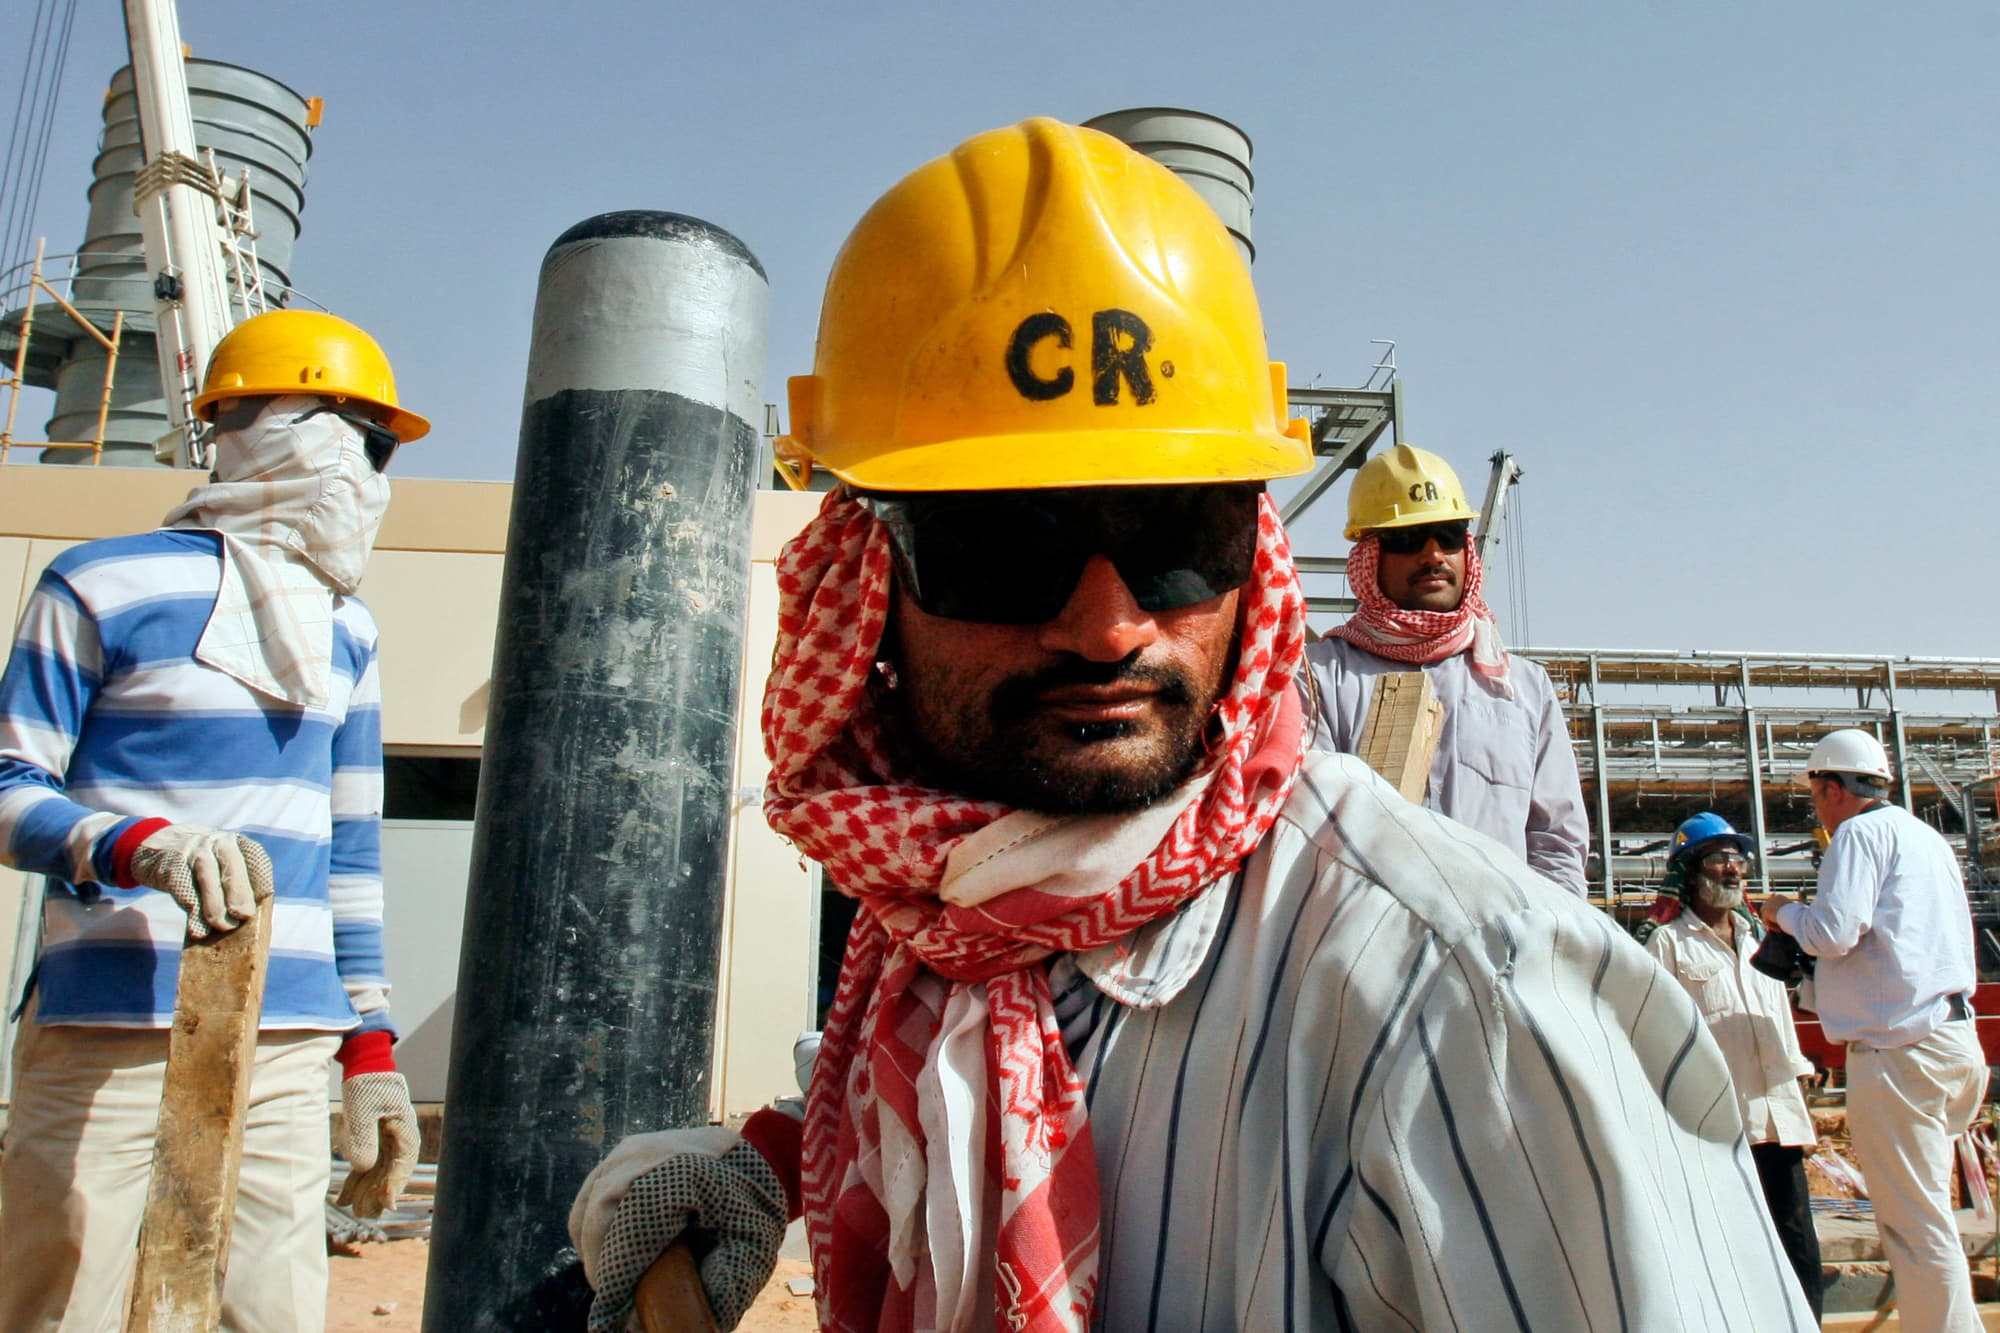 Saudi statement sparks concern the kingdom will weaponize oil